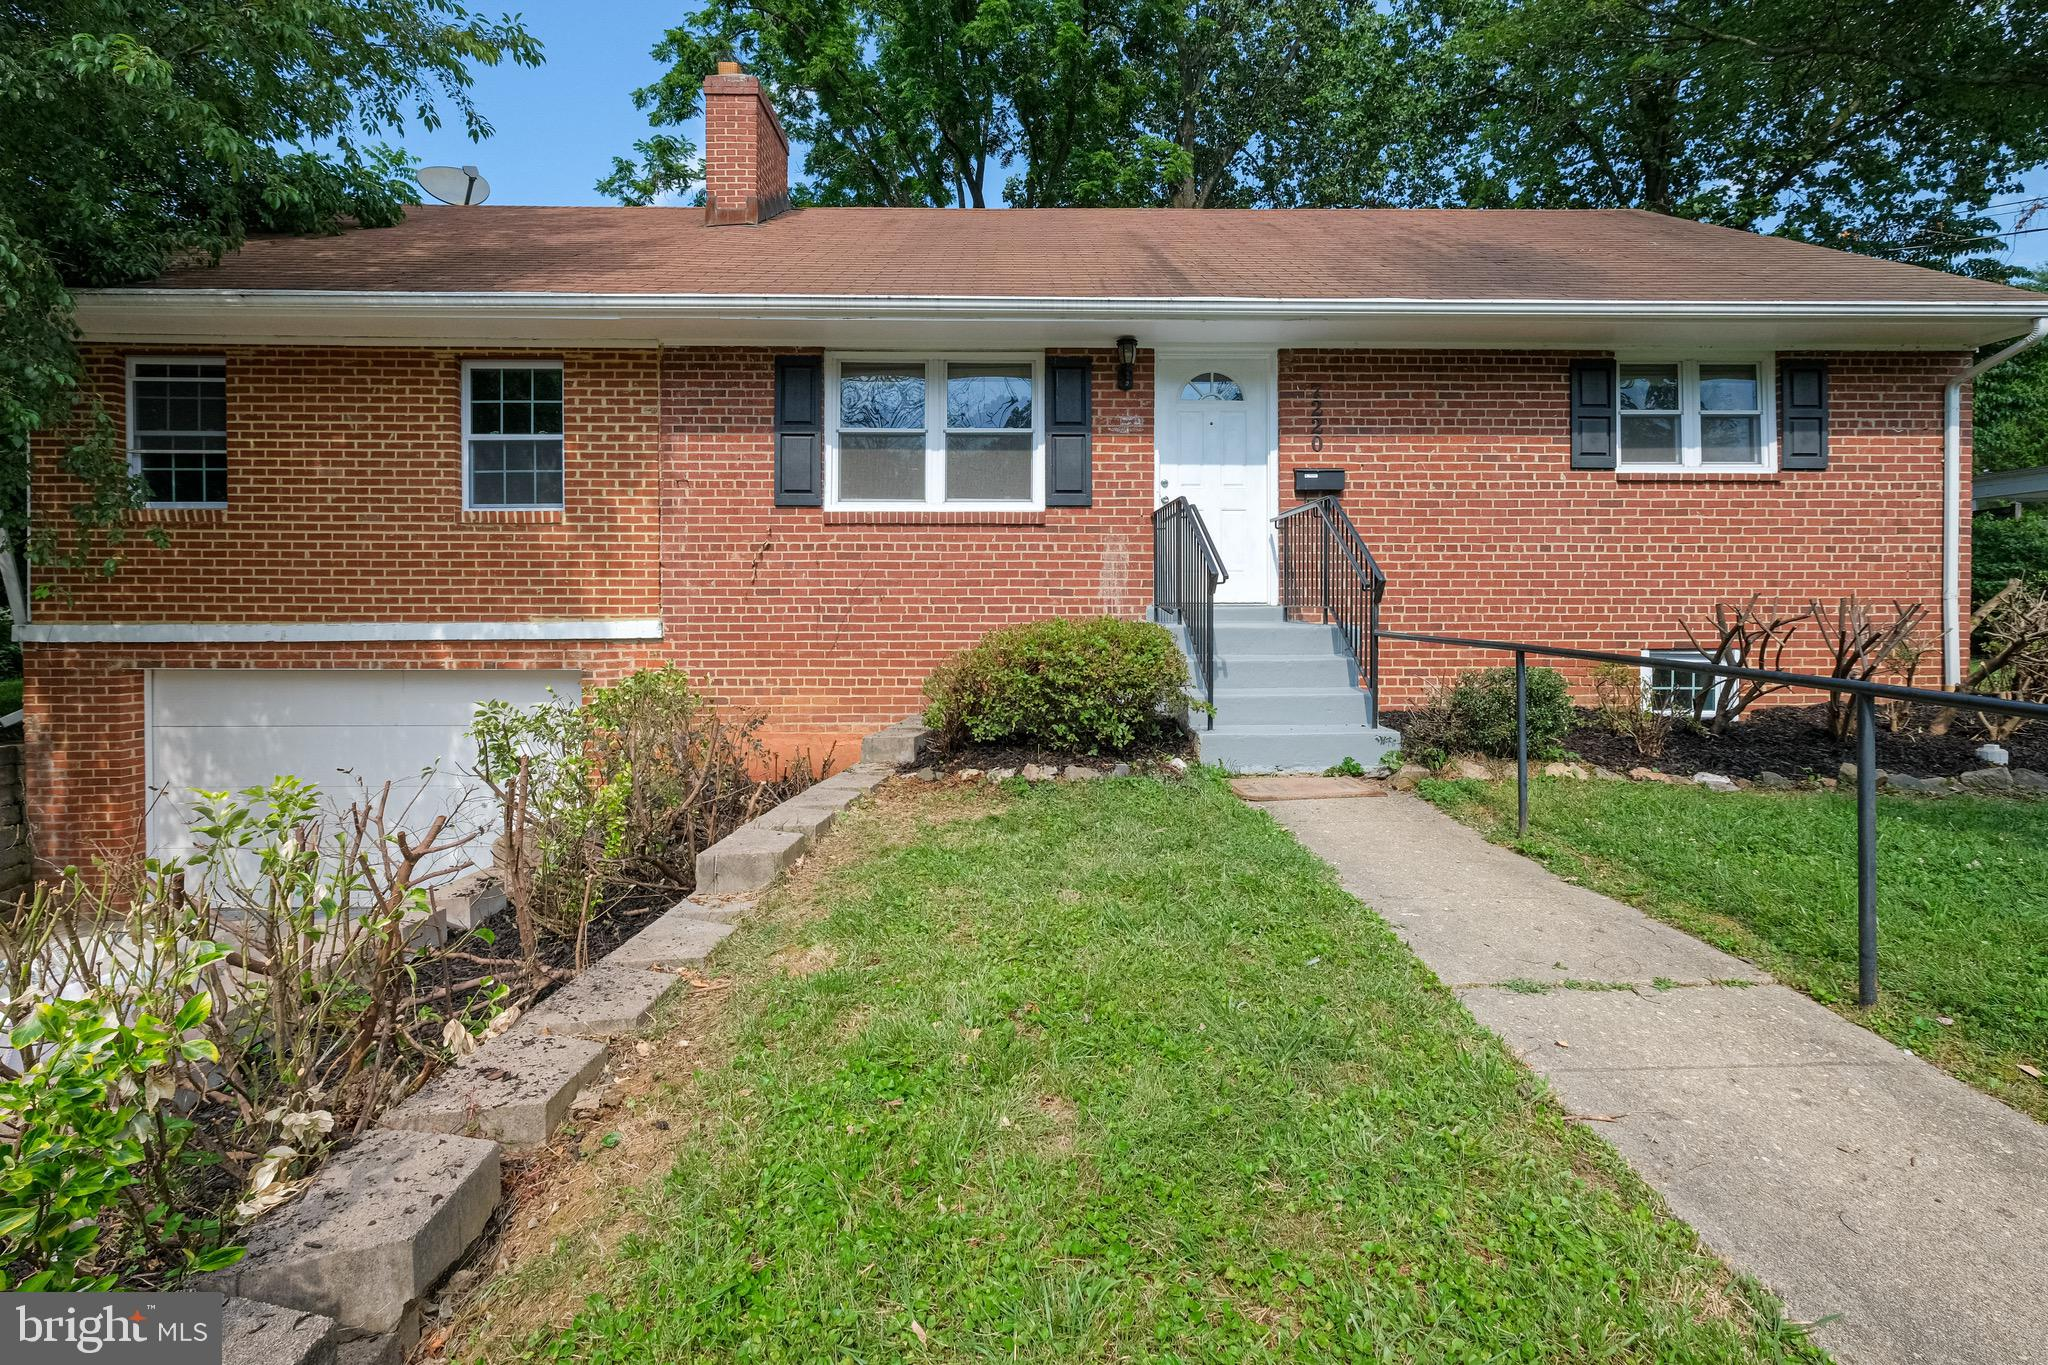 Fully Renovated. New Kitchen, Bathrooms, Paint, Windows, Flooring, Granite Countertops, Recess lights, Cabinets and much More. Convinielty located inside the Beltway, Close to major highways, Shopping Malls. A Must See!